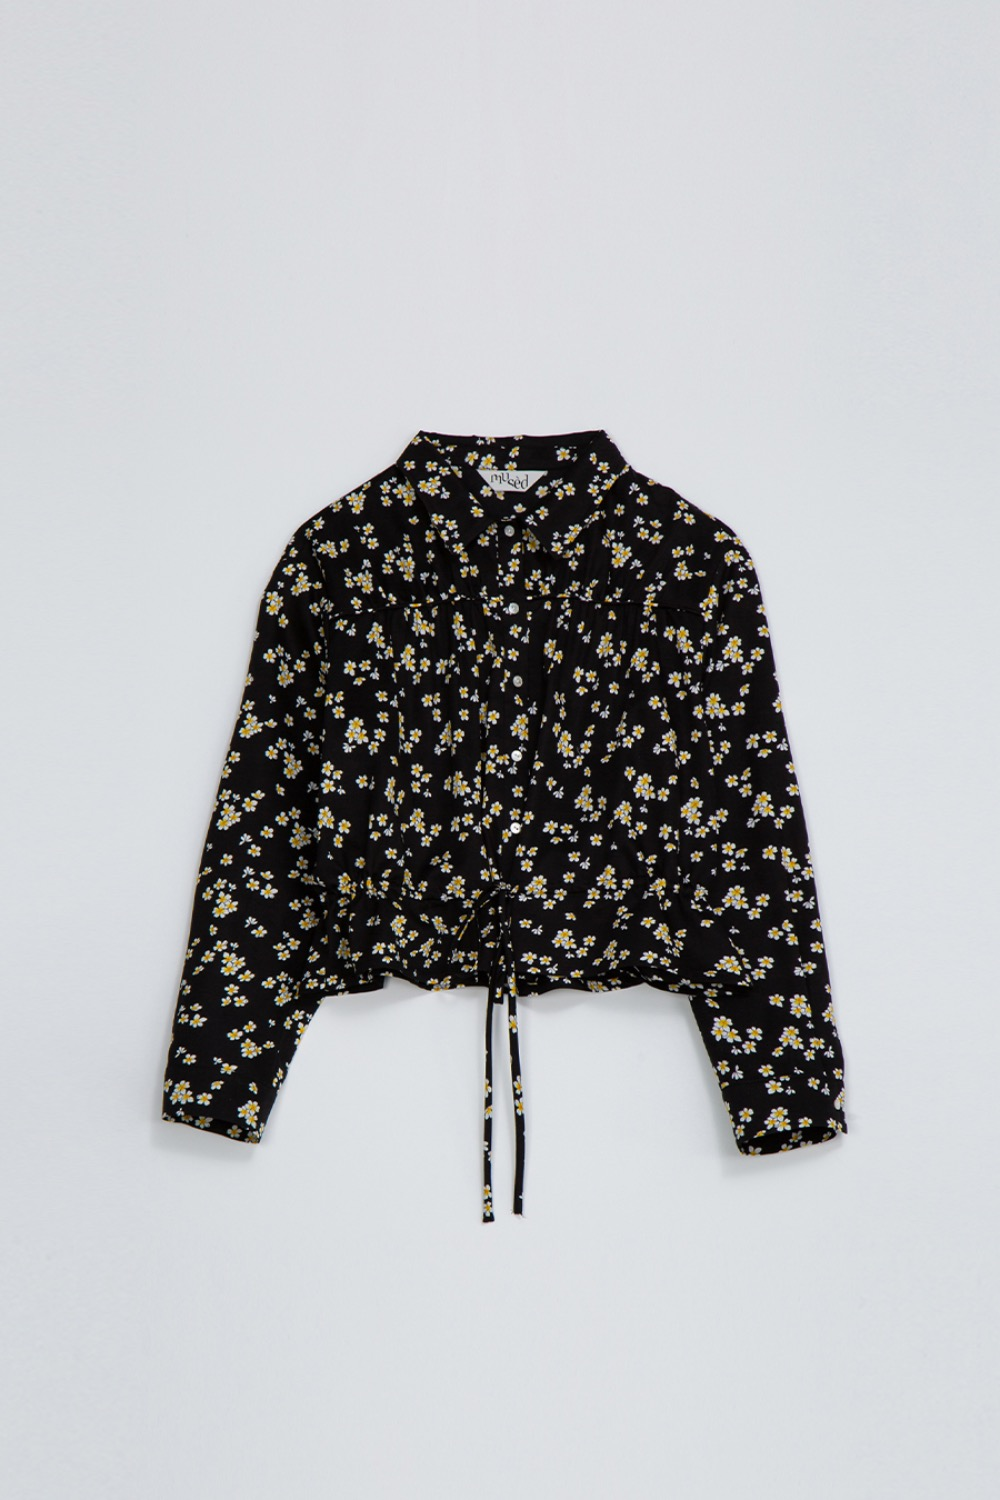 BIEN SHIRT JACKET -BLACK FLORAL ARTWORK